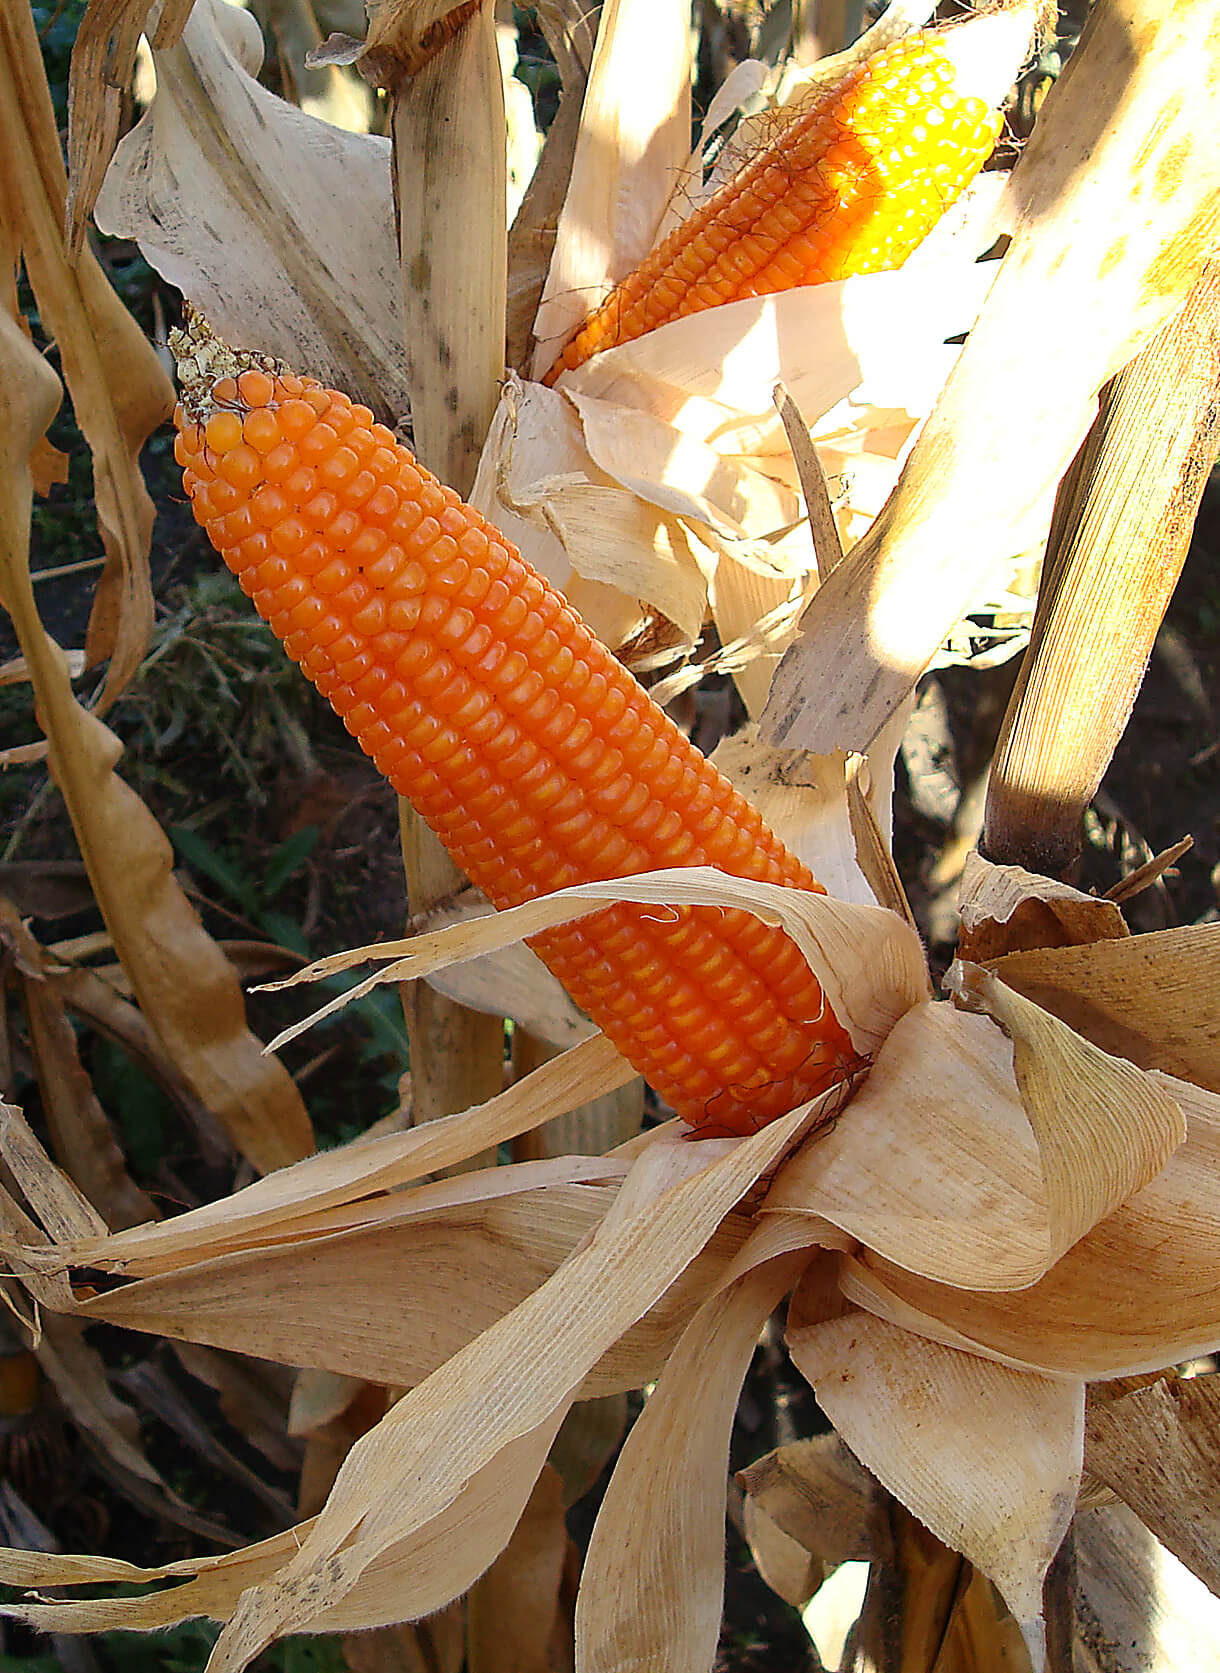 Orange Corn Holds Promise For Reducing Blindness Child Death